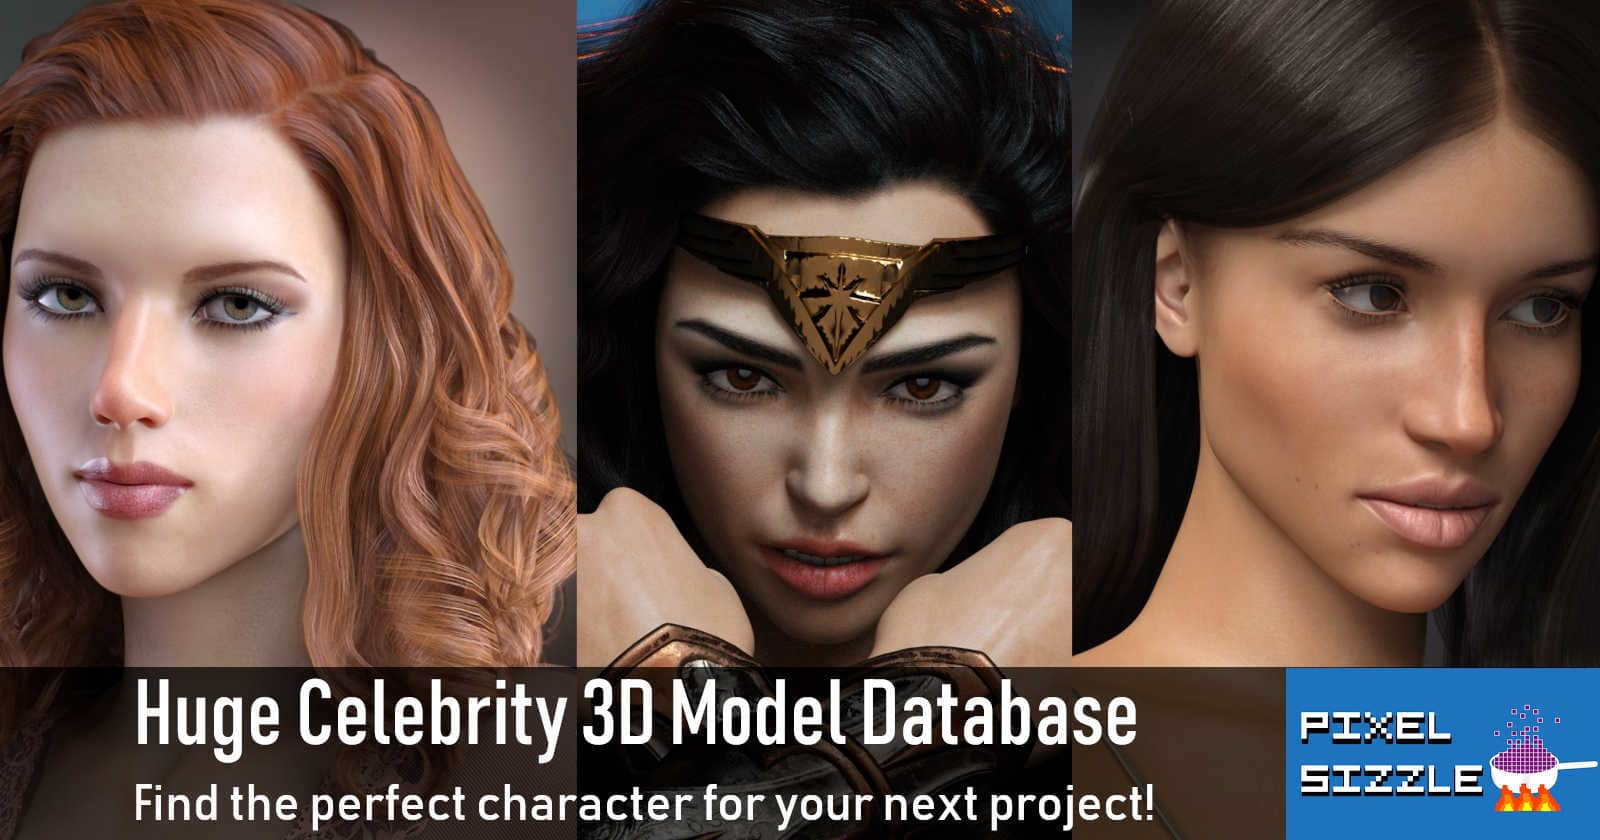 Exciting Daz Studio and Poser Content - 3D Models